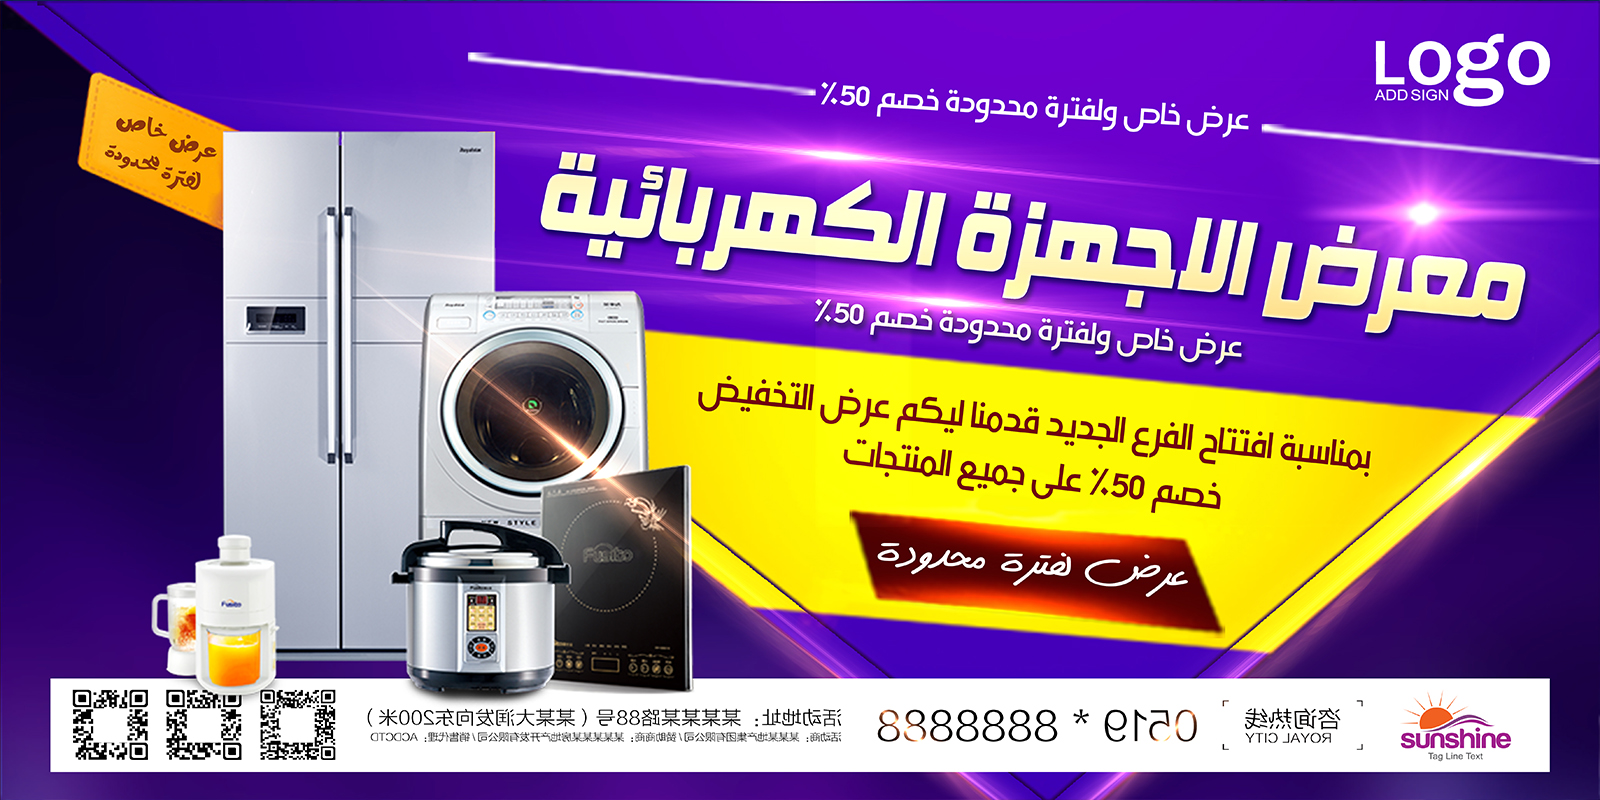 Special design for home appliances. Large banner suitable for print or web banners with modification of sizes